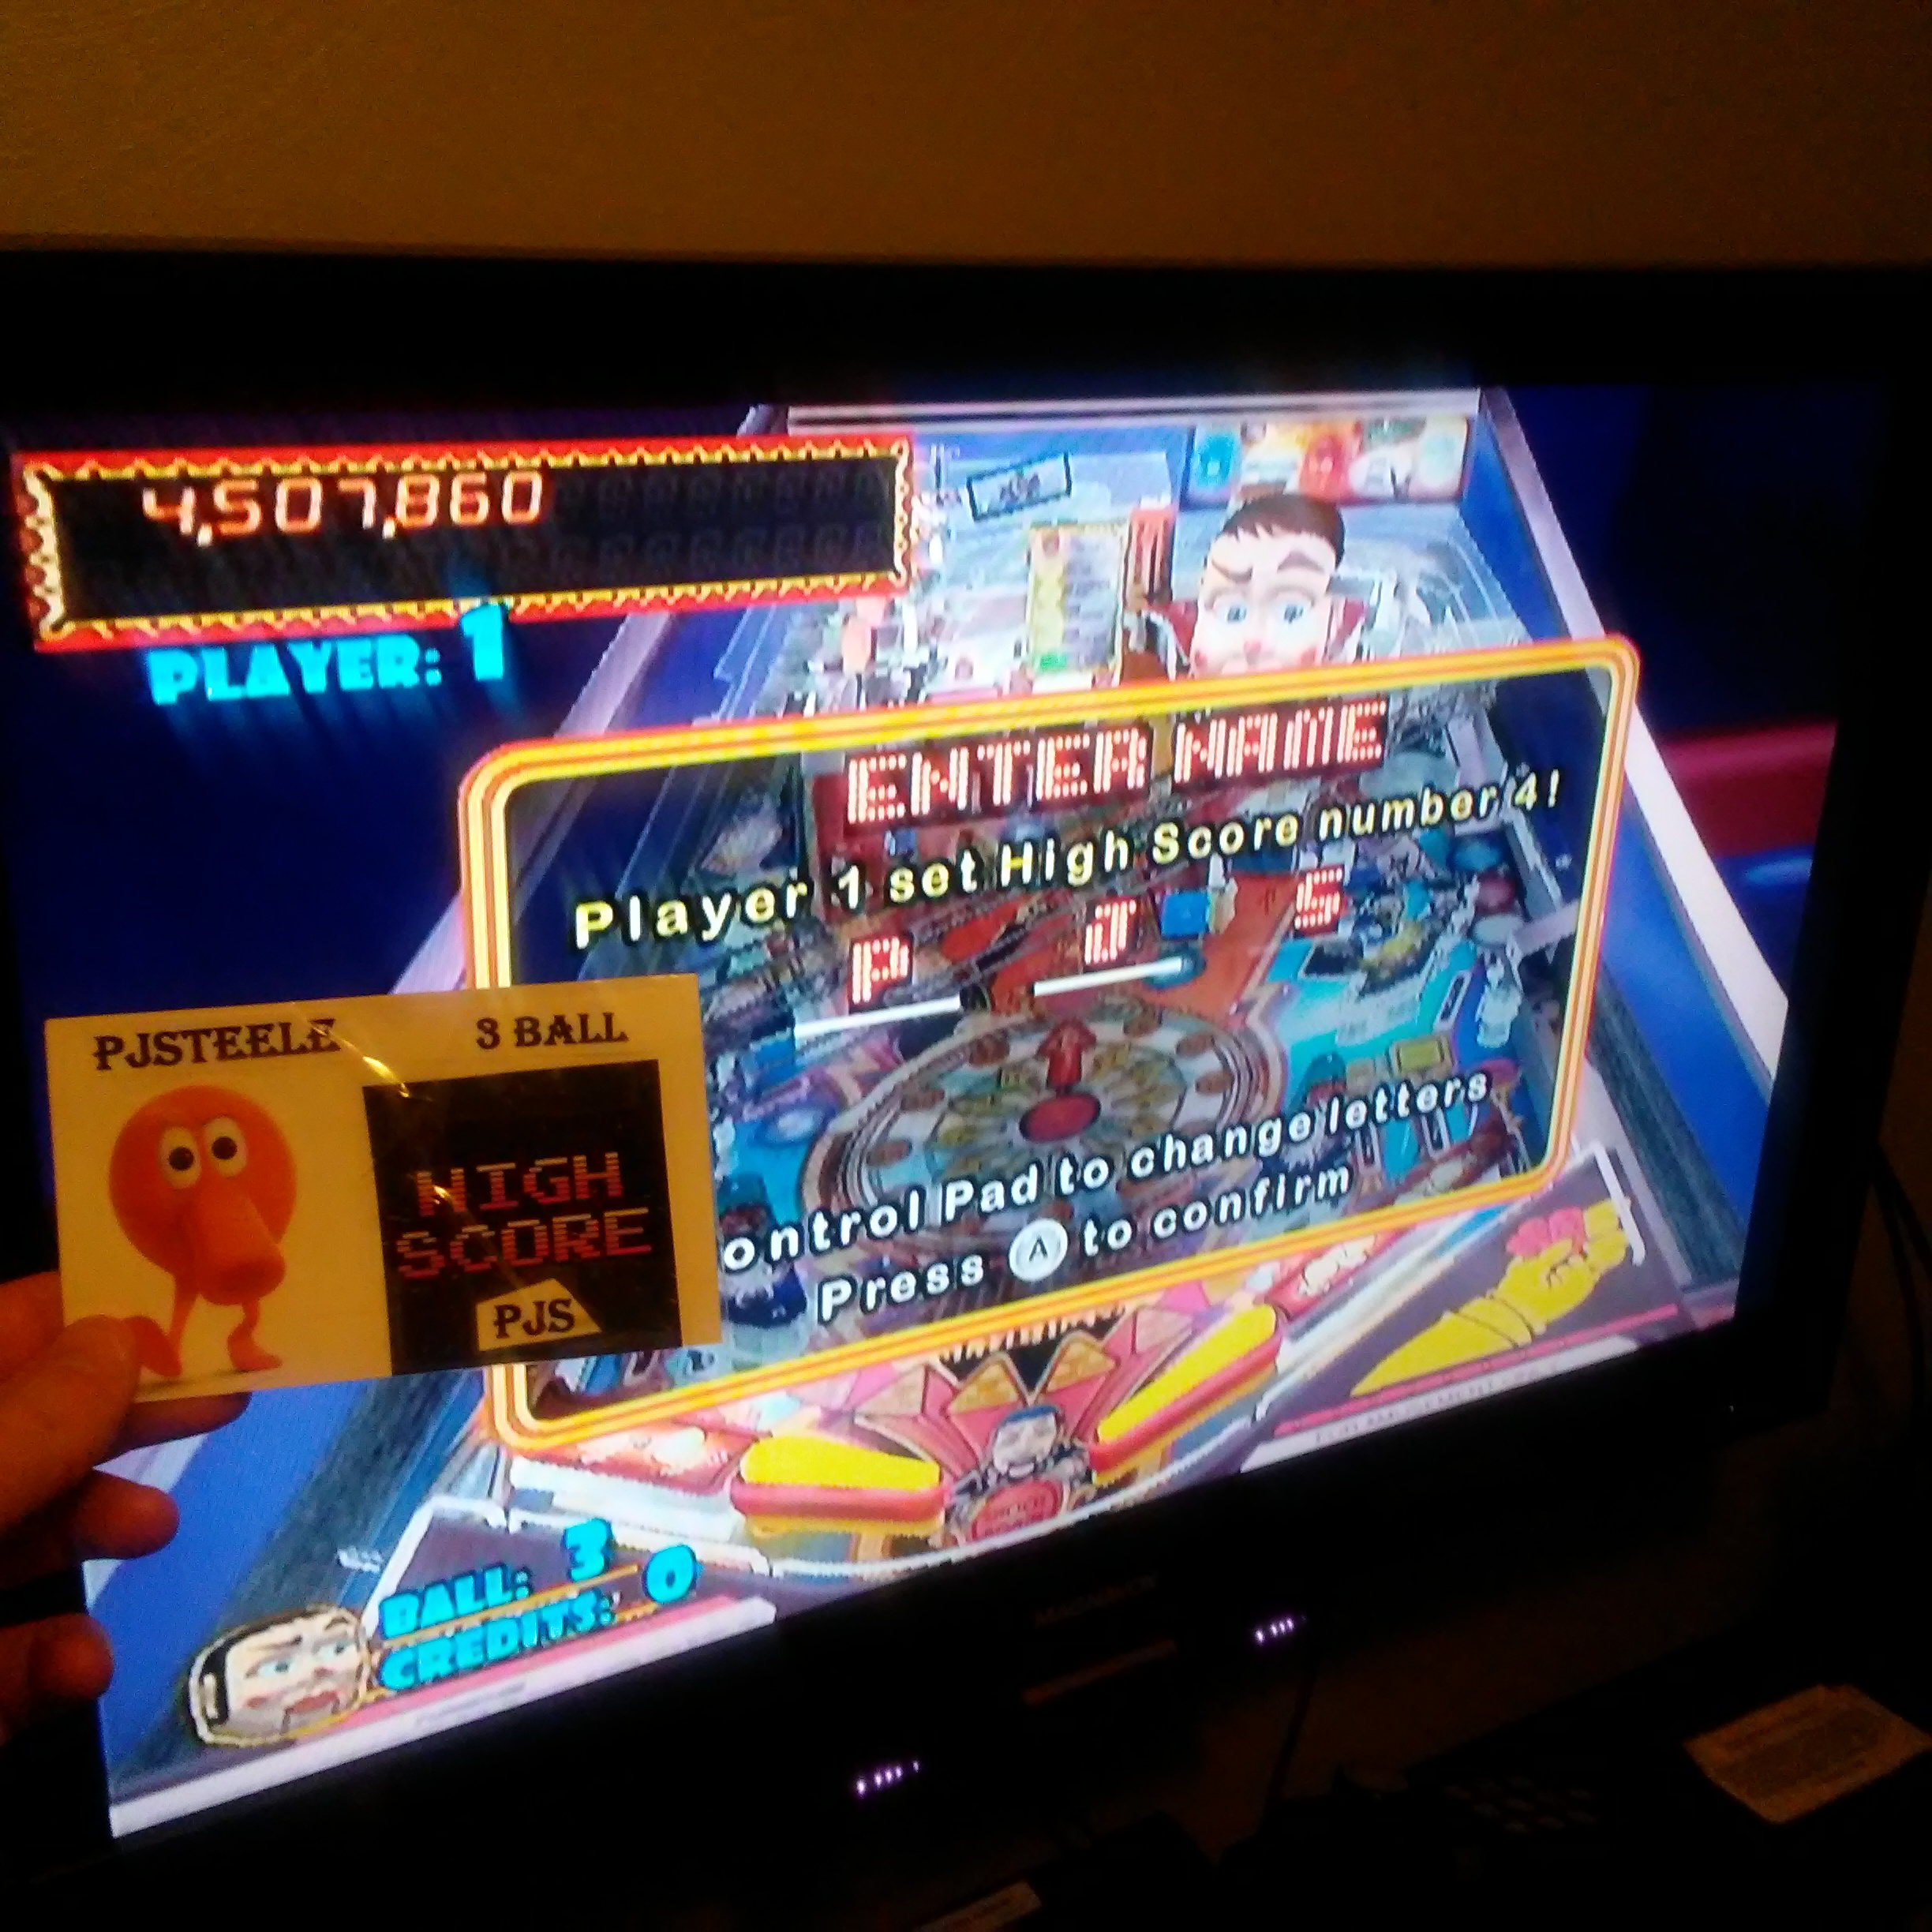 Pjsteele: Pinball Hall of Fame: The Williams Collection: Funhouse (Wii) 4,507,860 points on 2018-02-17 23:54:43